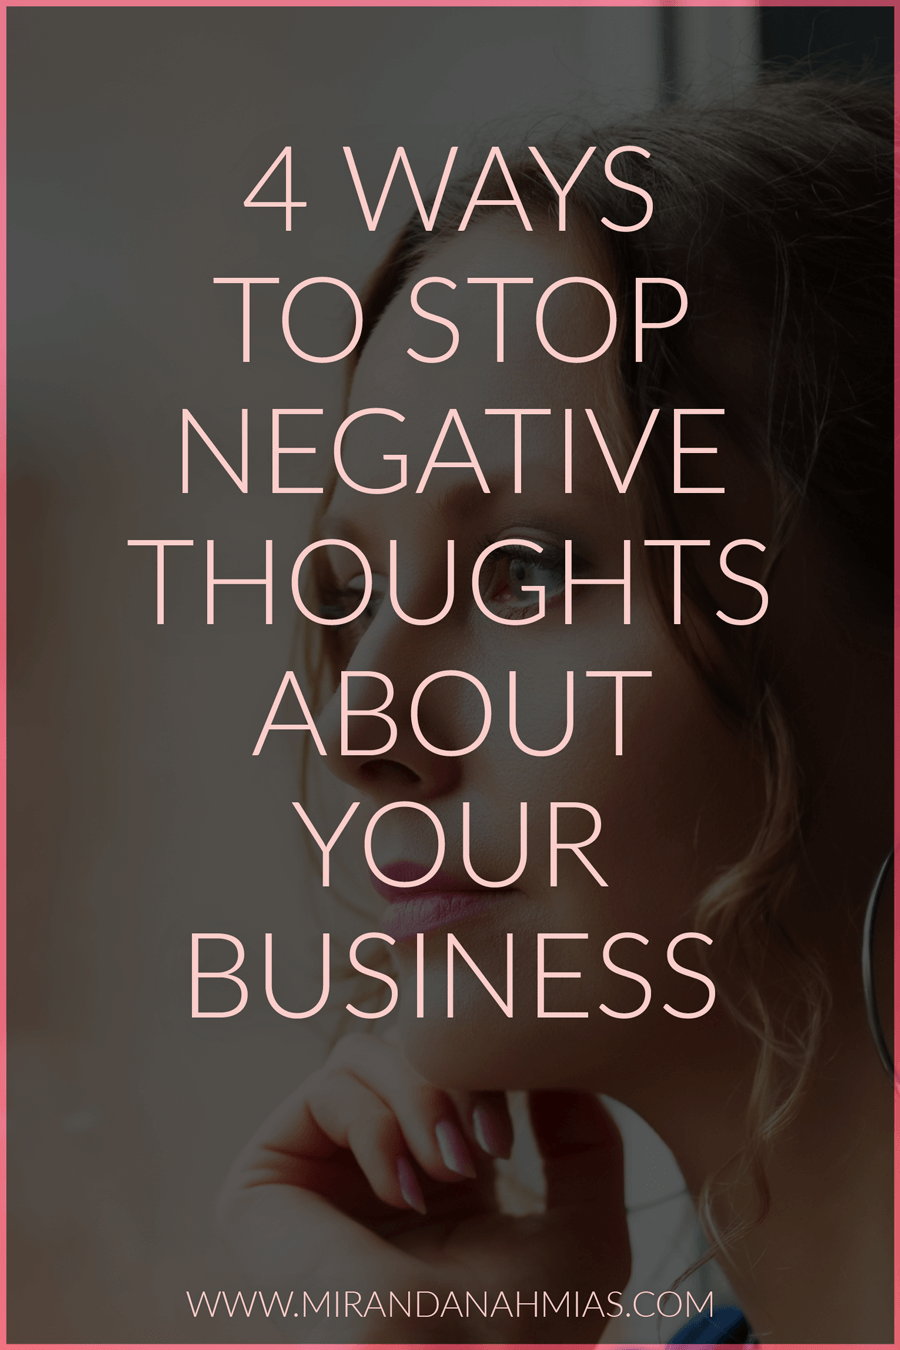 Do you ever start to have negative thoughts about your business? Especially when setting goals, it's easy to get caught up in disappointment or frustration. Here are 4 ways to stop those negative thoughts! | Miranda Nahmias & Co. — Score New Clients and Explode Your Business with Systematic Marketing